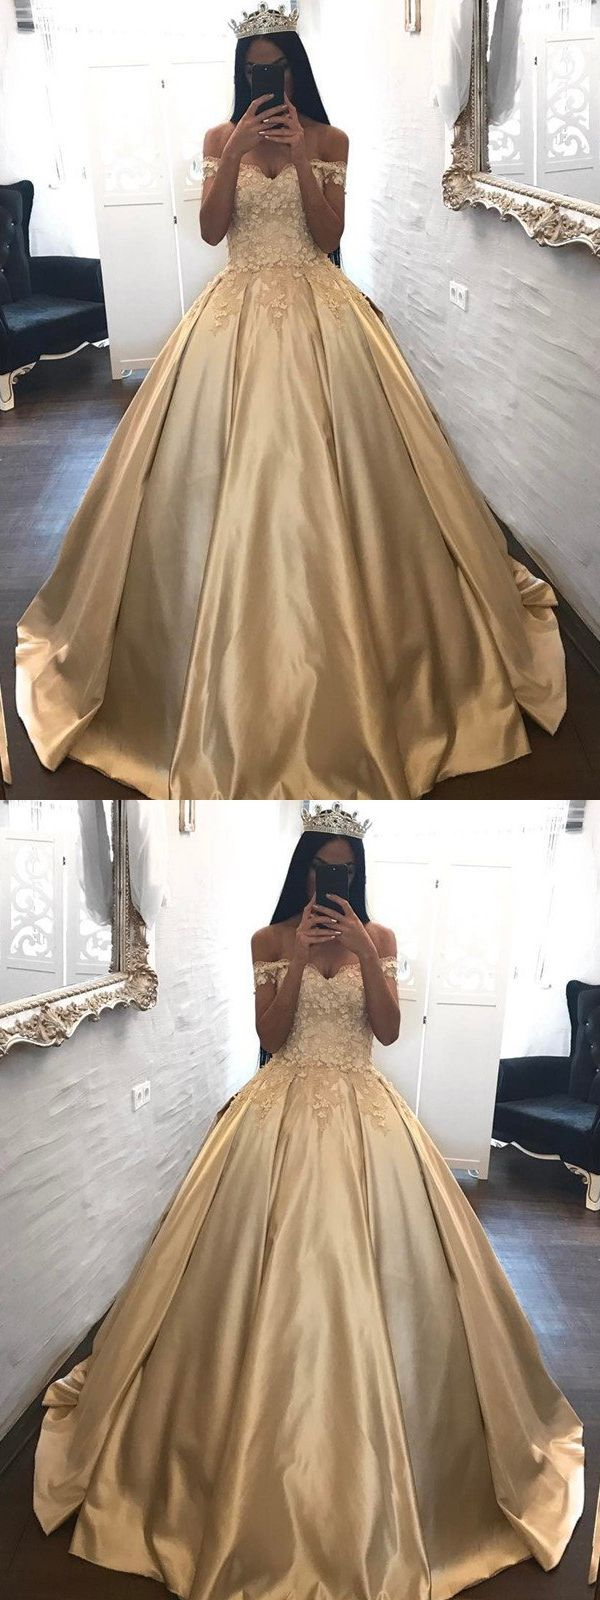 prom dresses long,prom dresses for teens,prom dresses boho,prom dresses cheap,junior prom dresses,beautiful prom dresses,prom dresses 2018,gorgeous prom dresses,prom dresses 2017,prom dresses unique,prom dresses elegant,prom dresses largos,prom dresses graduacion,prom dresses classy,prom dresses modest,prom dresses simple,prom dresses champagne,prom dresses off the shoulder #annapromdress #prom #promdress #evening #eveningdress #dance #longdress #longpromdress #fashion #style #dress